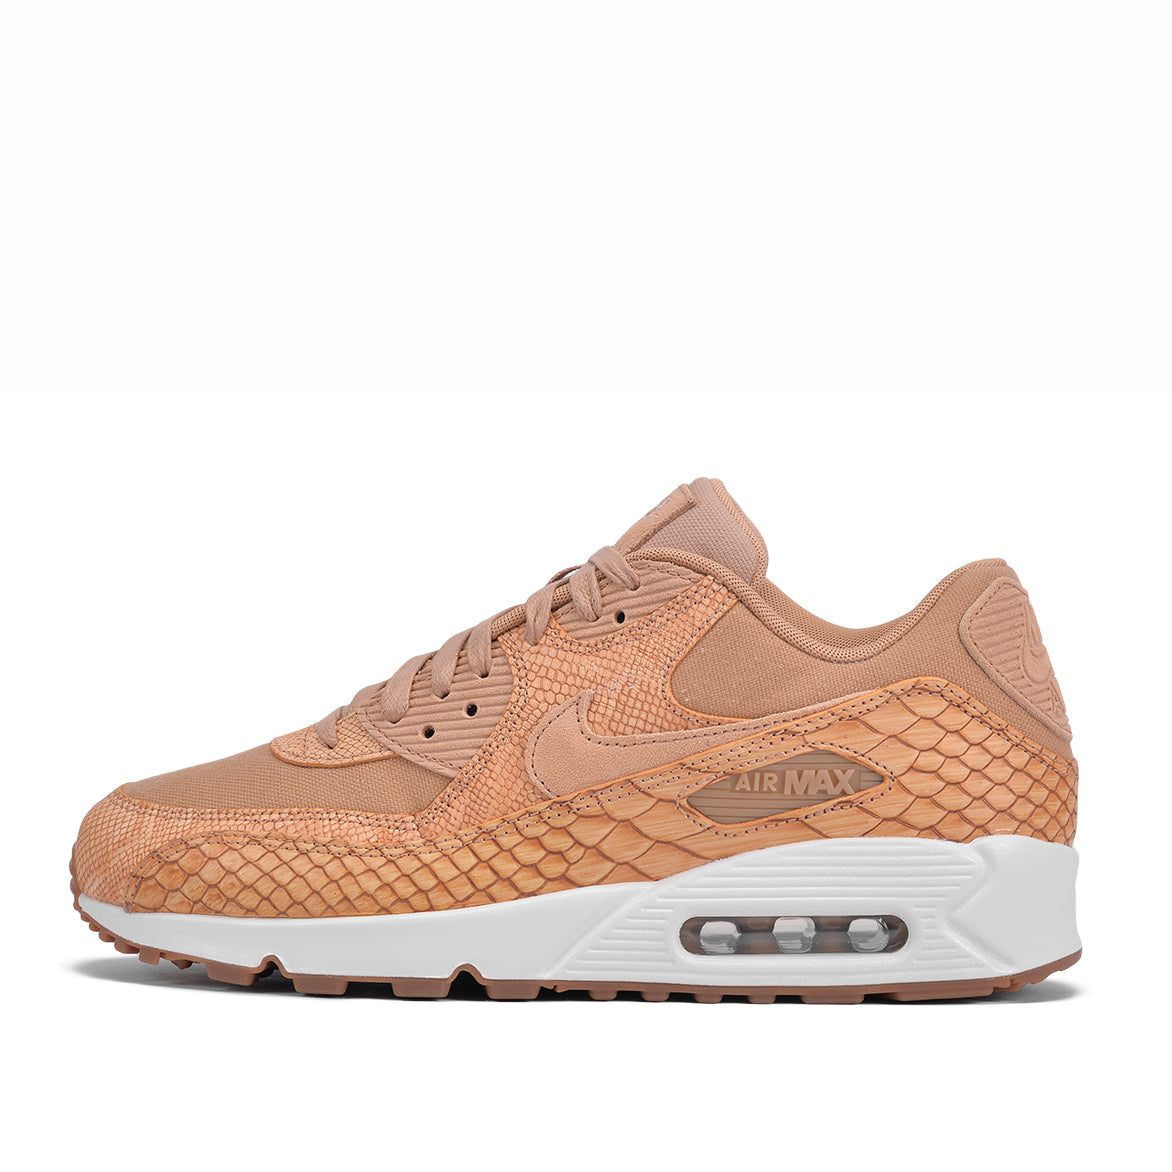 9a33cdf0f4 spain air max 90 tan 4fb48 f1532; order nike air max 90 premium ltr  vachetta tan 591cf b7902